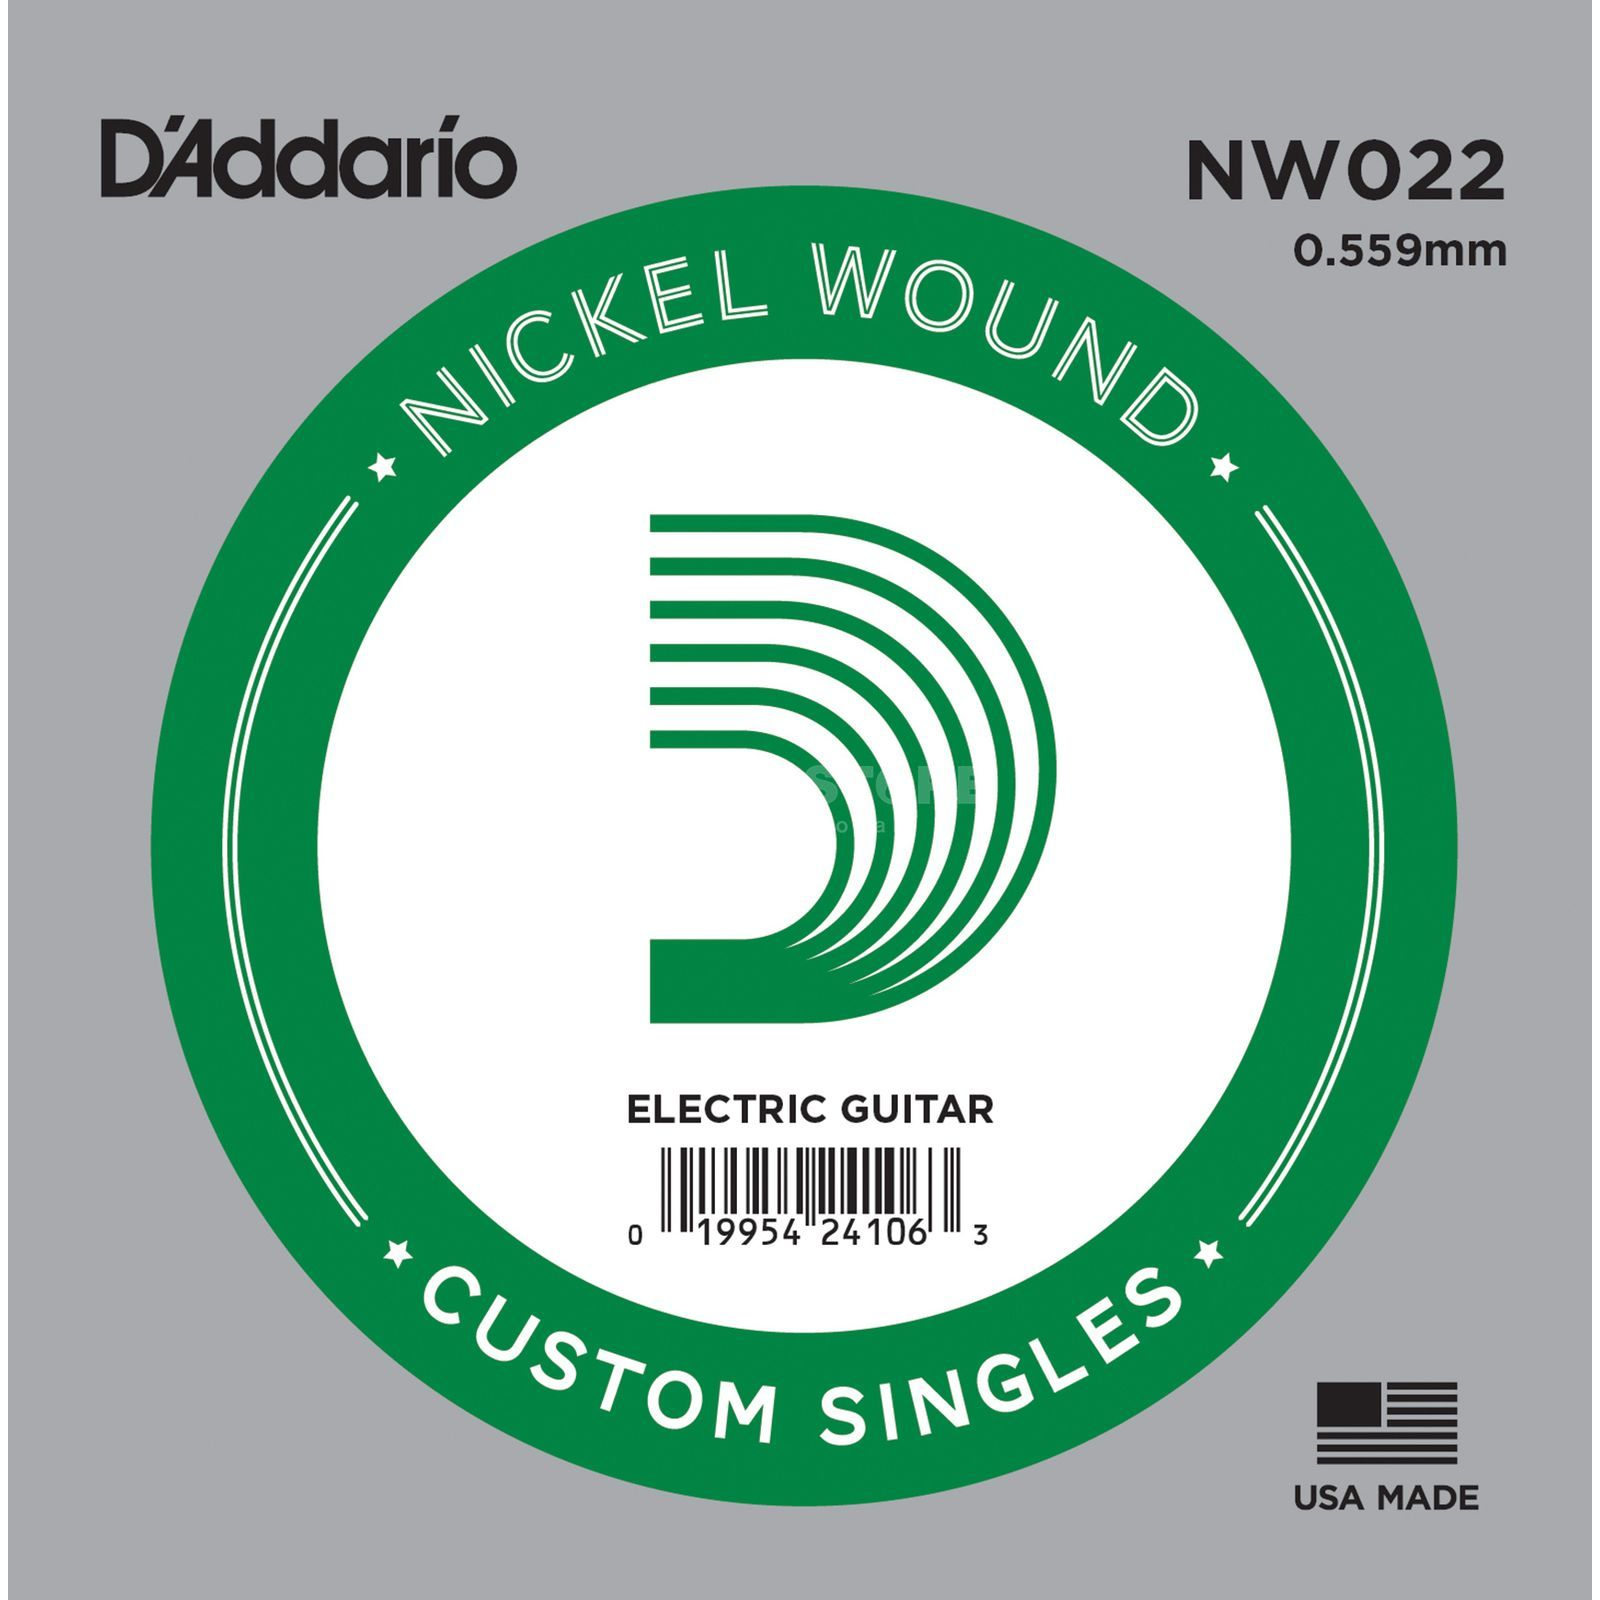 D'Addario Single String NW022 Nickelwound Product Image